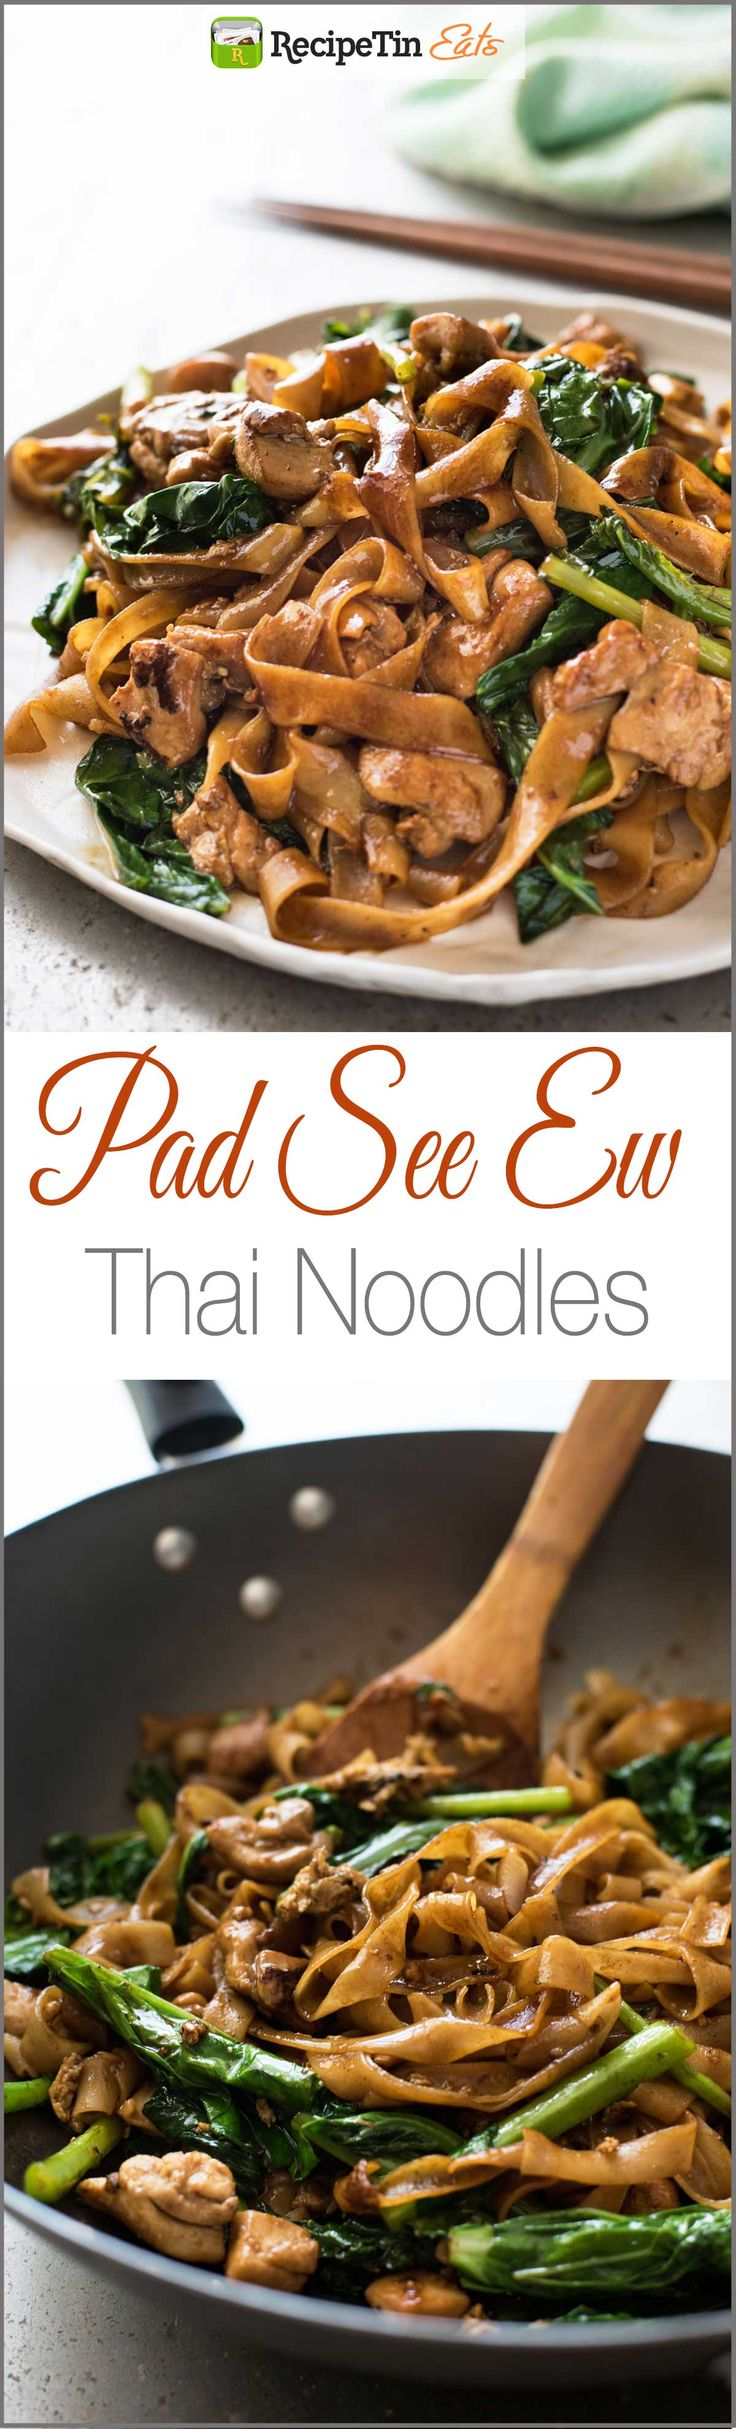 Fast easy thai food recipes